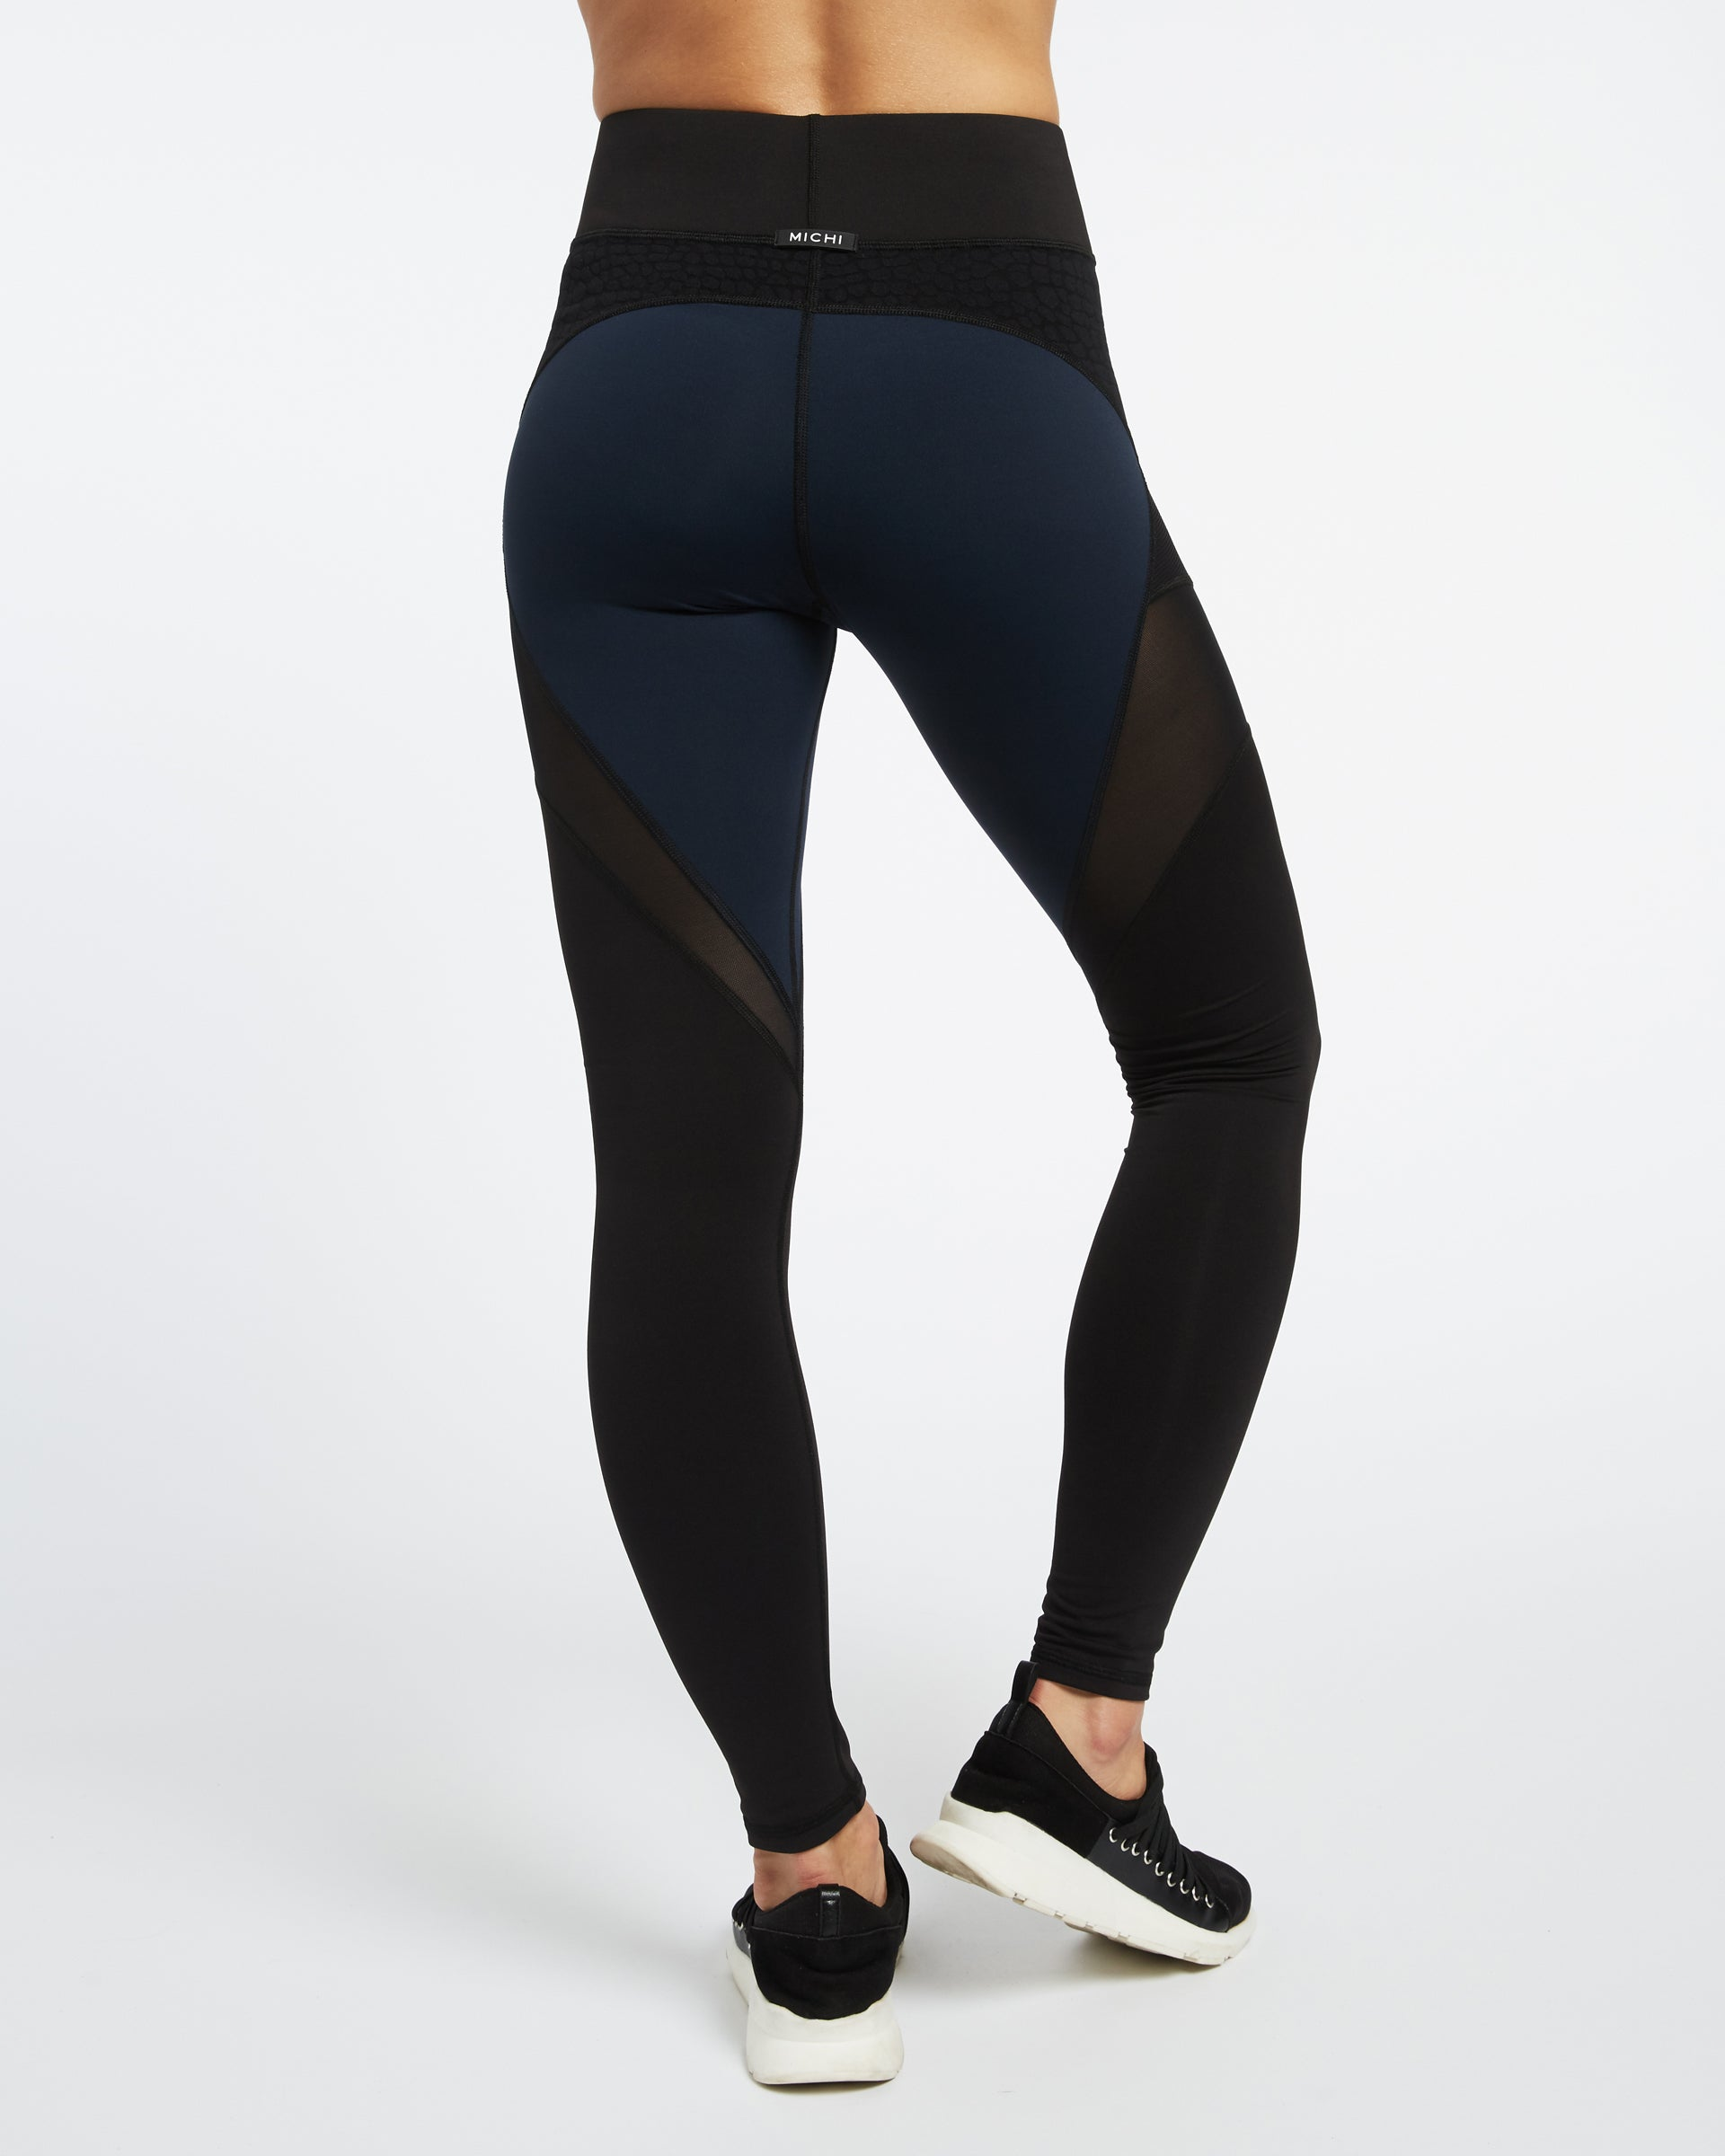 mirage-legging-deep-sea-navymirage-legging-deep-sea-navy-black